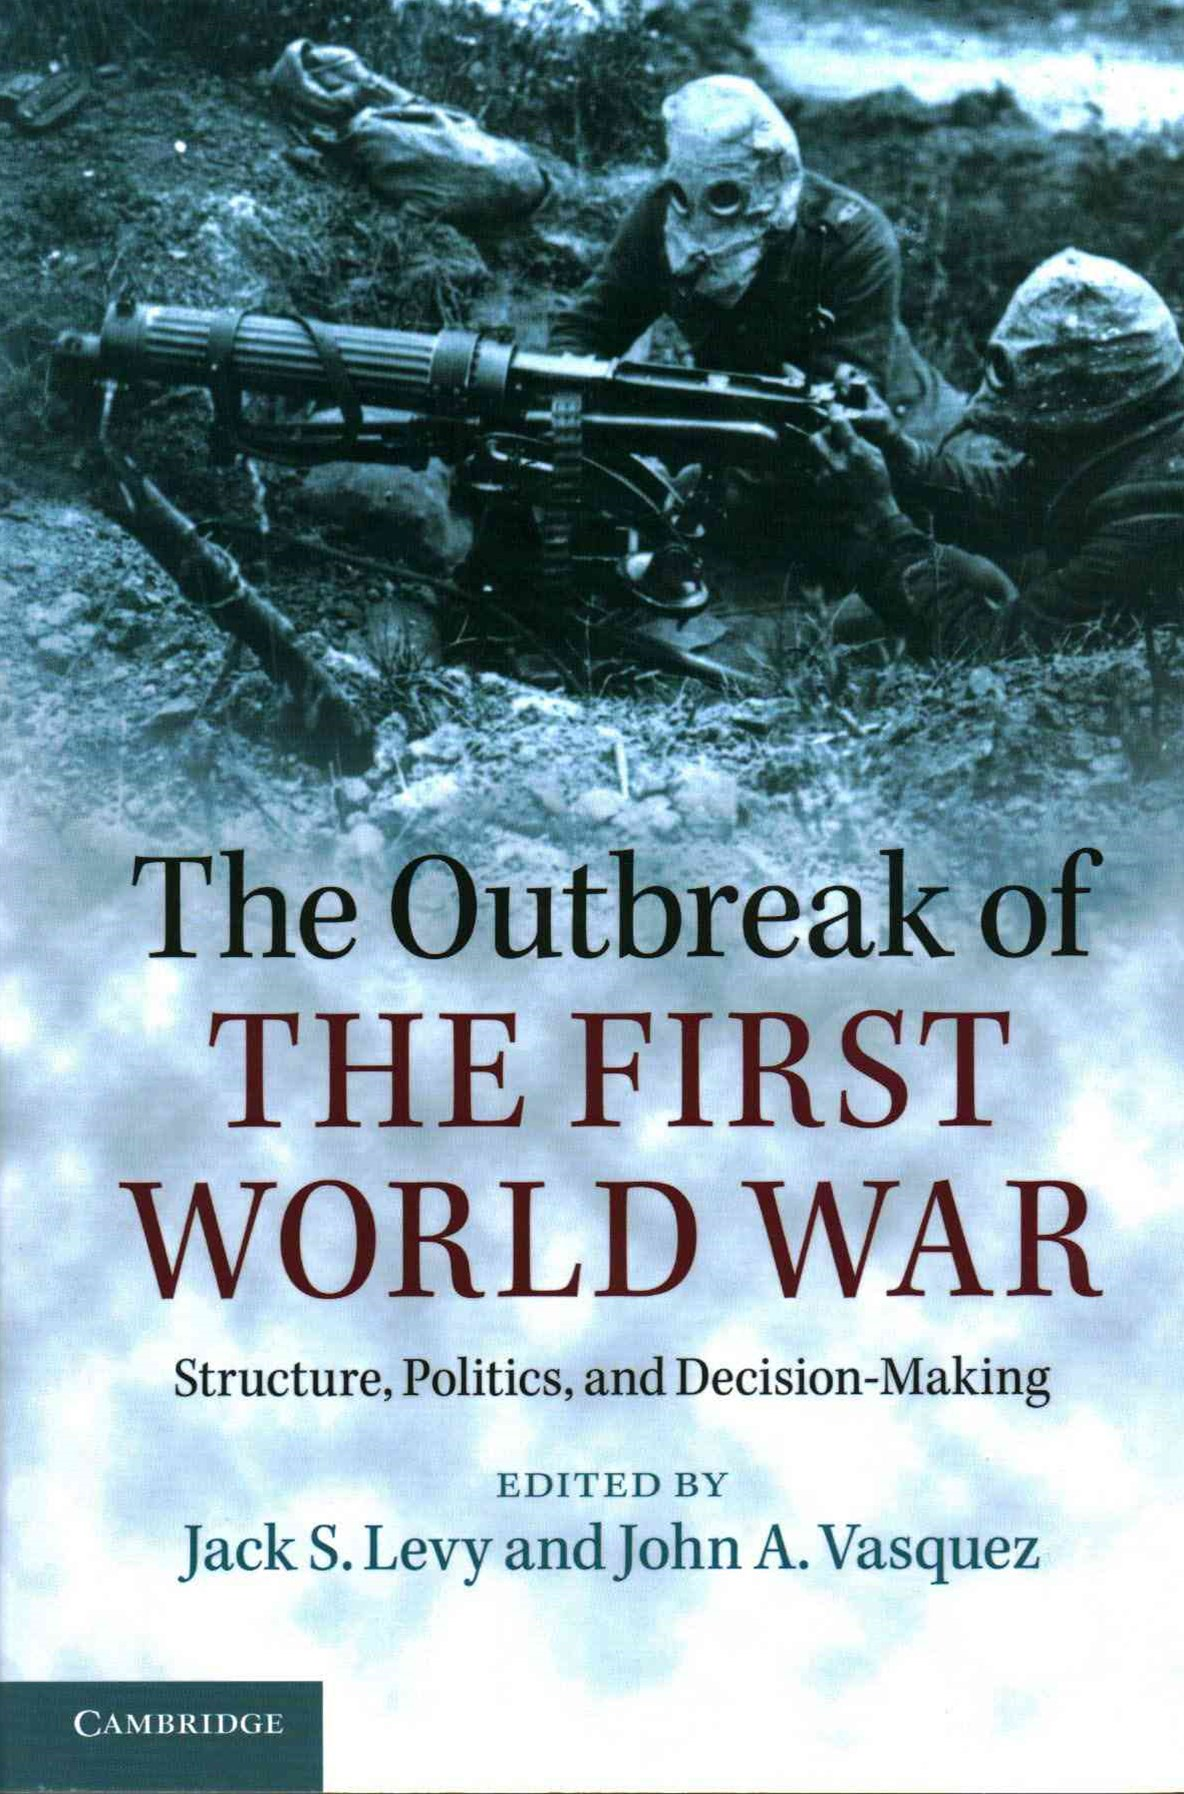 The Outbreak of the First World War